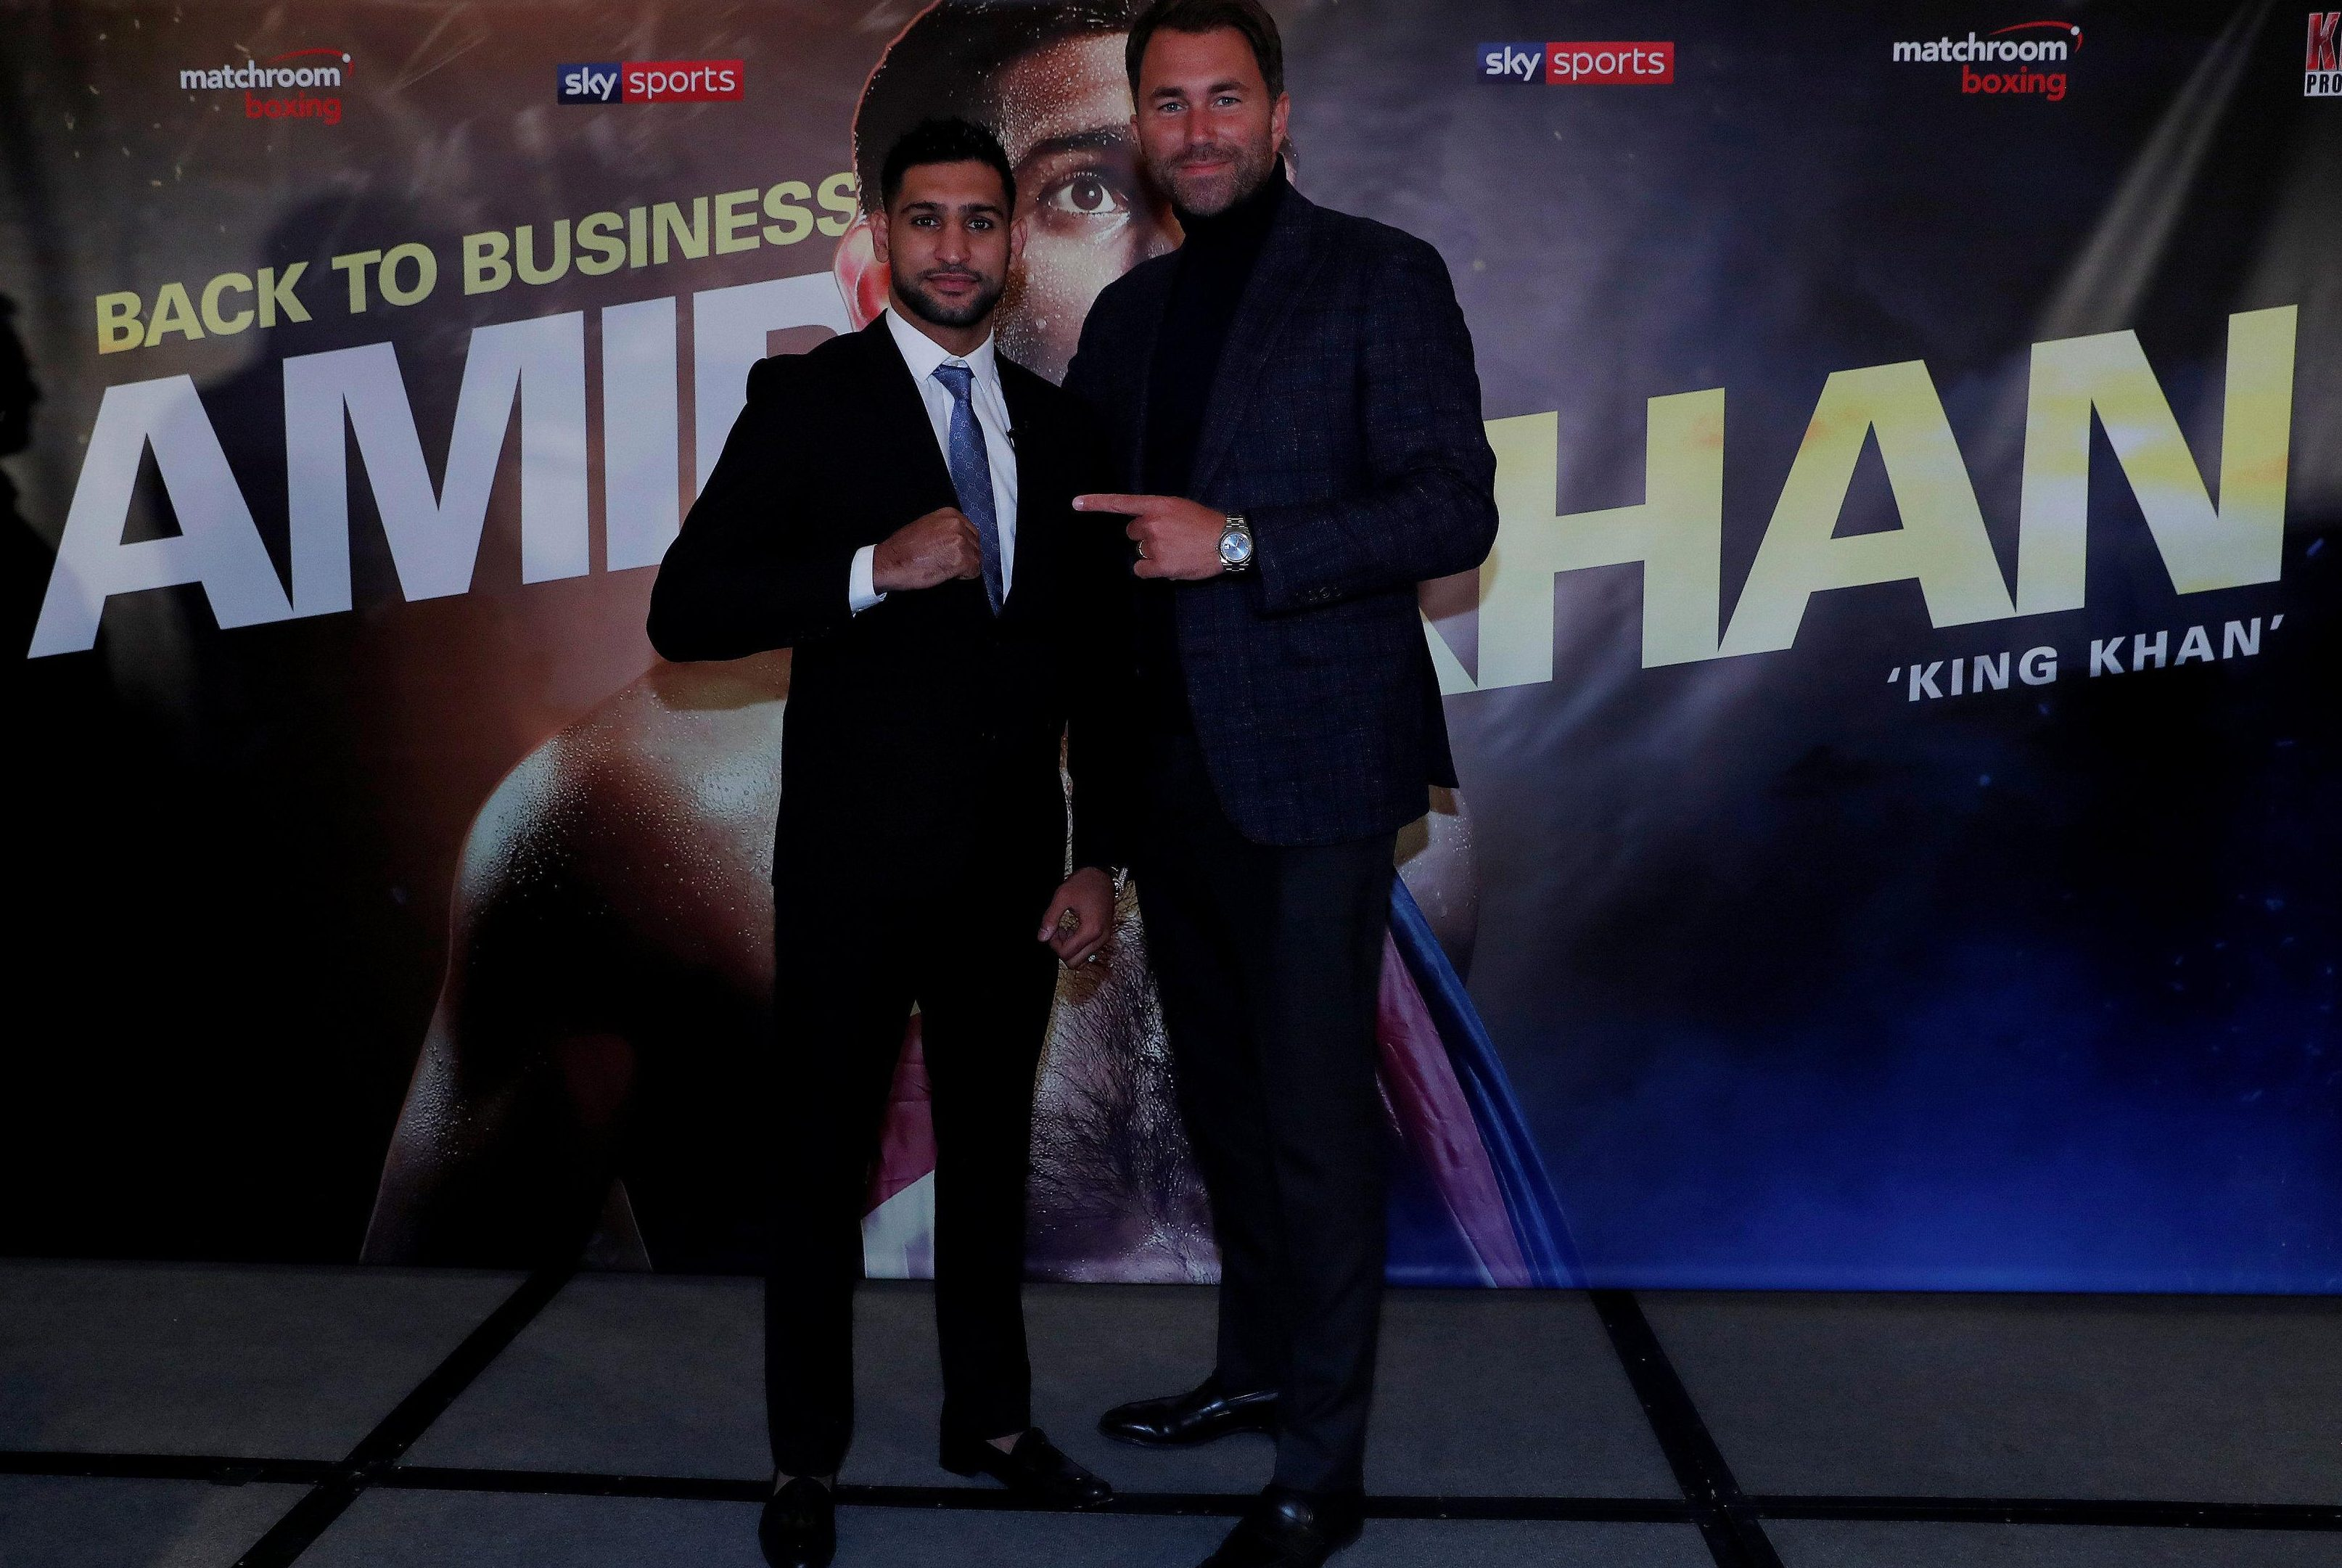 Eddie Hearn wants to sign Manny Pacquiao and line up a fight with Amir Khan